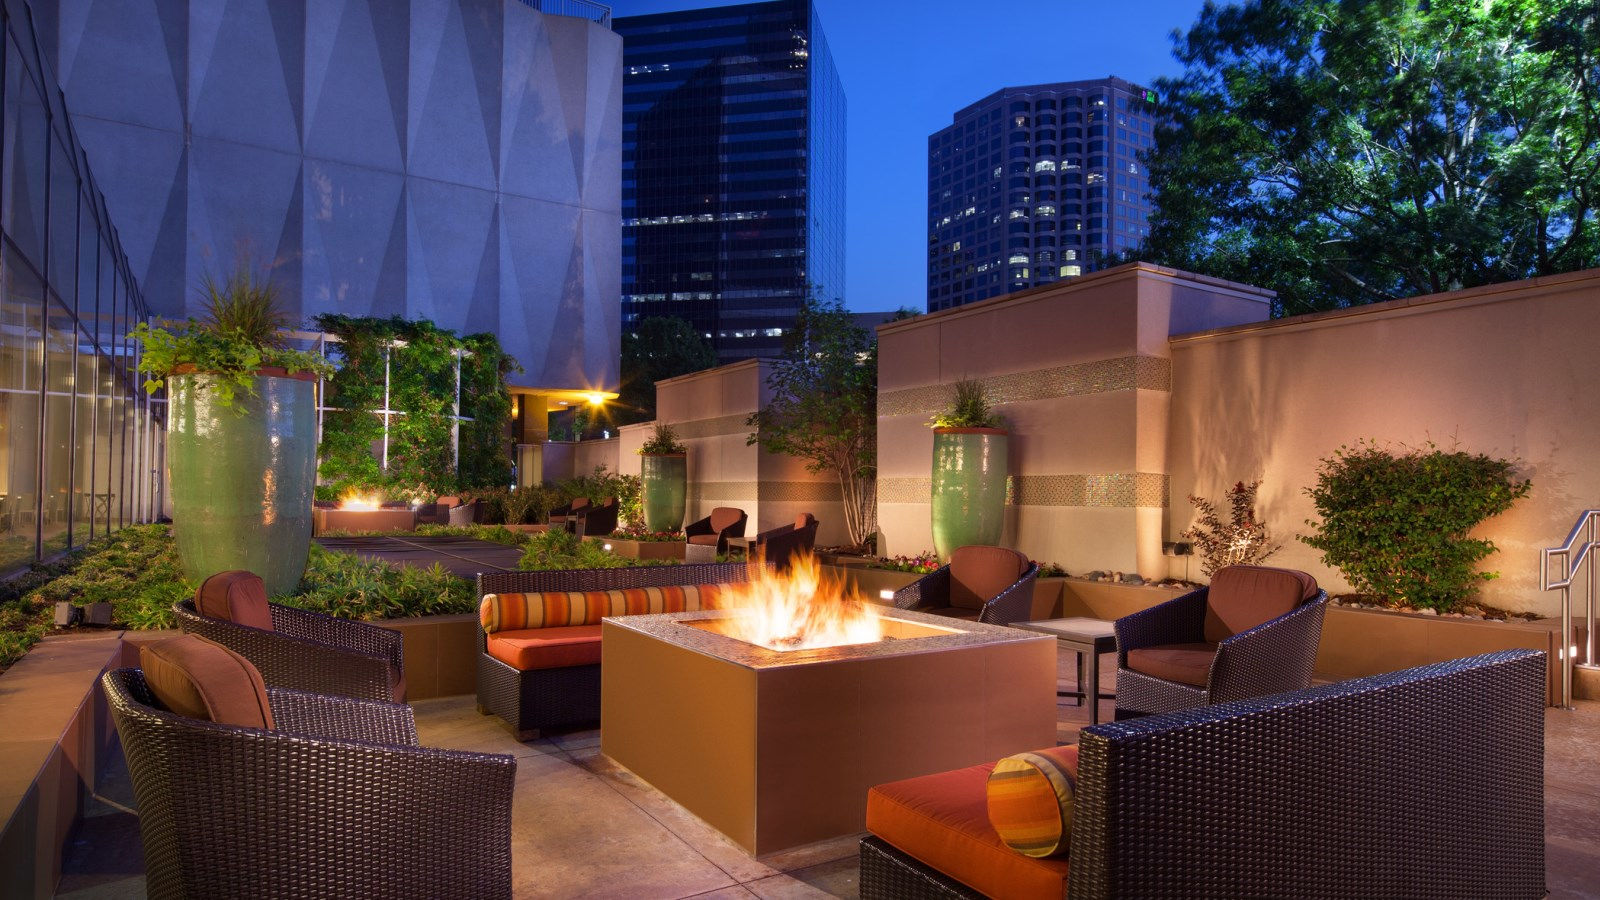 Downtown Dallas Venues - Firepits